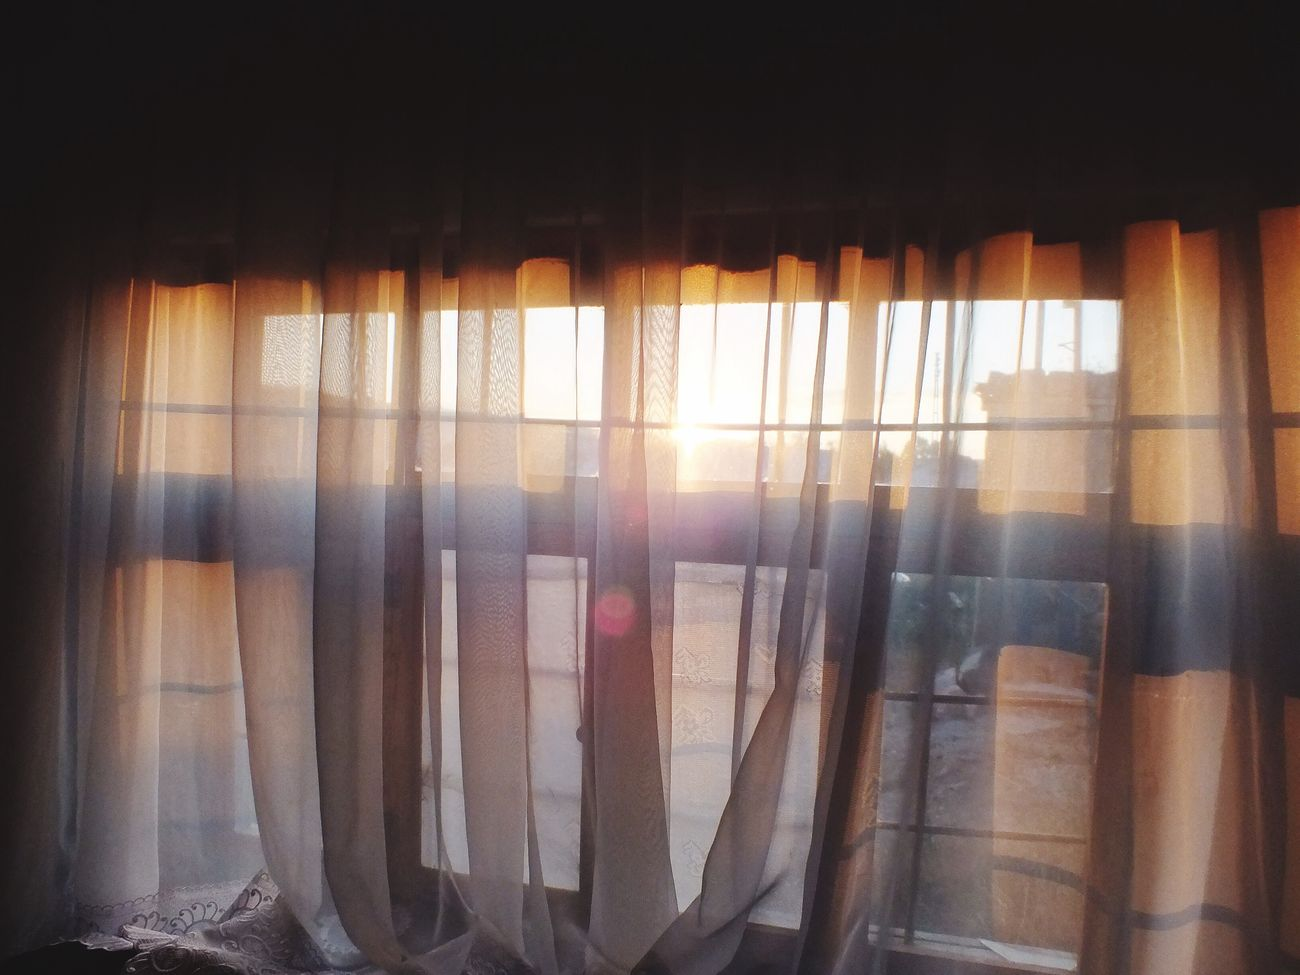 Window Indoors  Curtain Close-up Sunbeam No People Dust Sun Sabah Gundogarken Pencere Manzara Dediğin  Holiday